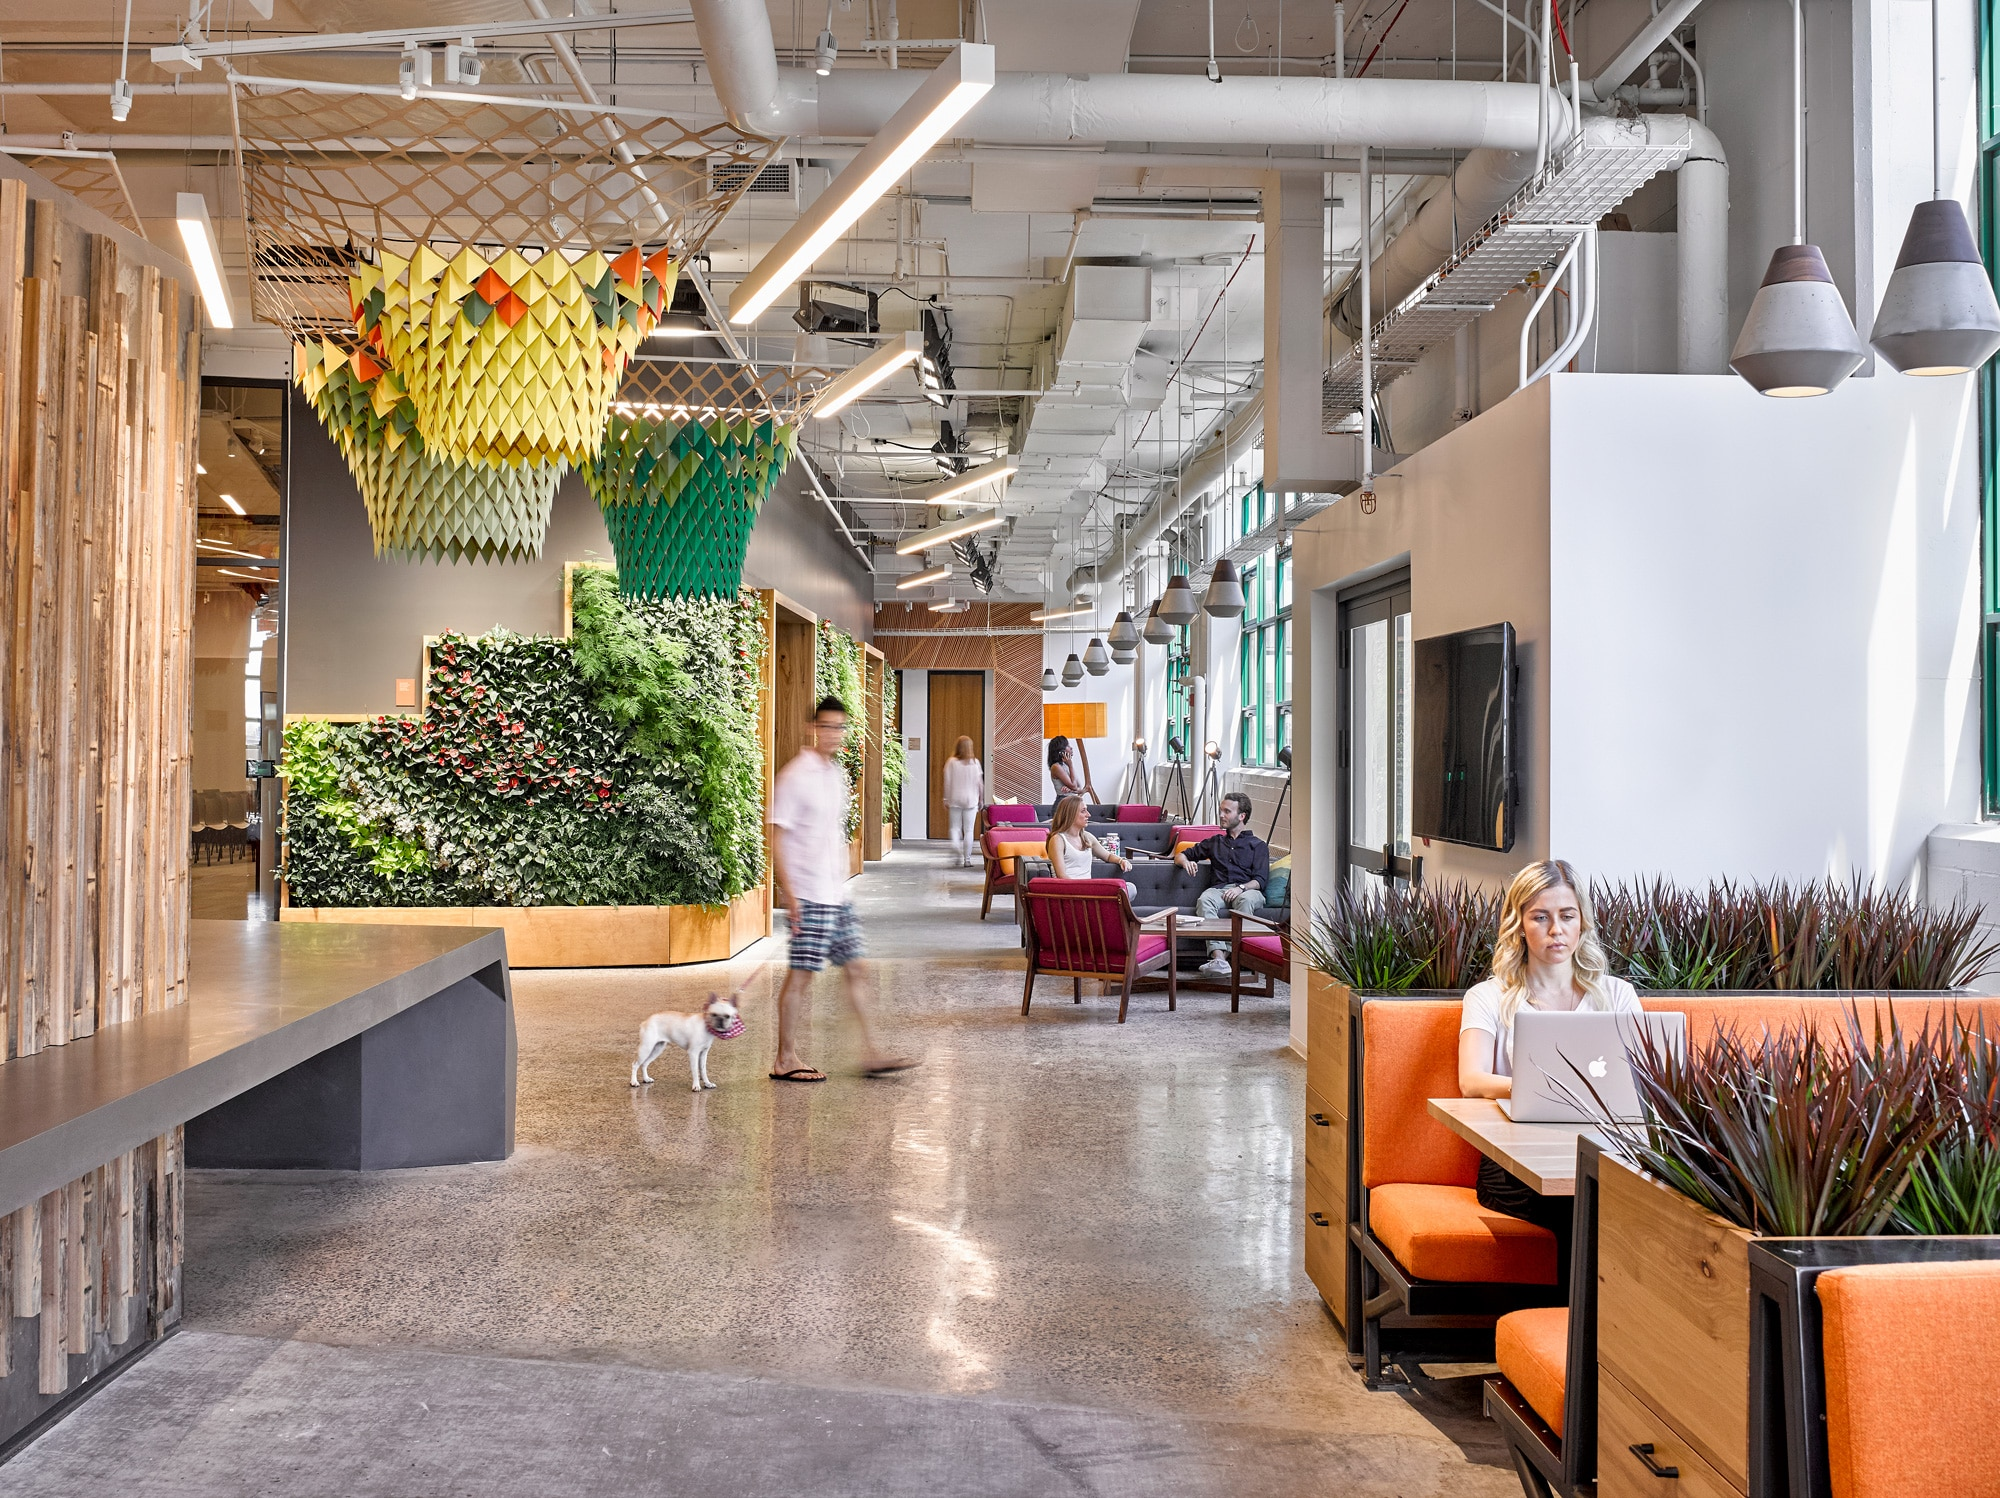 Etsy Crafts a Better Workplace to Meet the Living Building Challenge  gbd